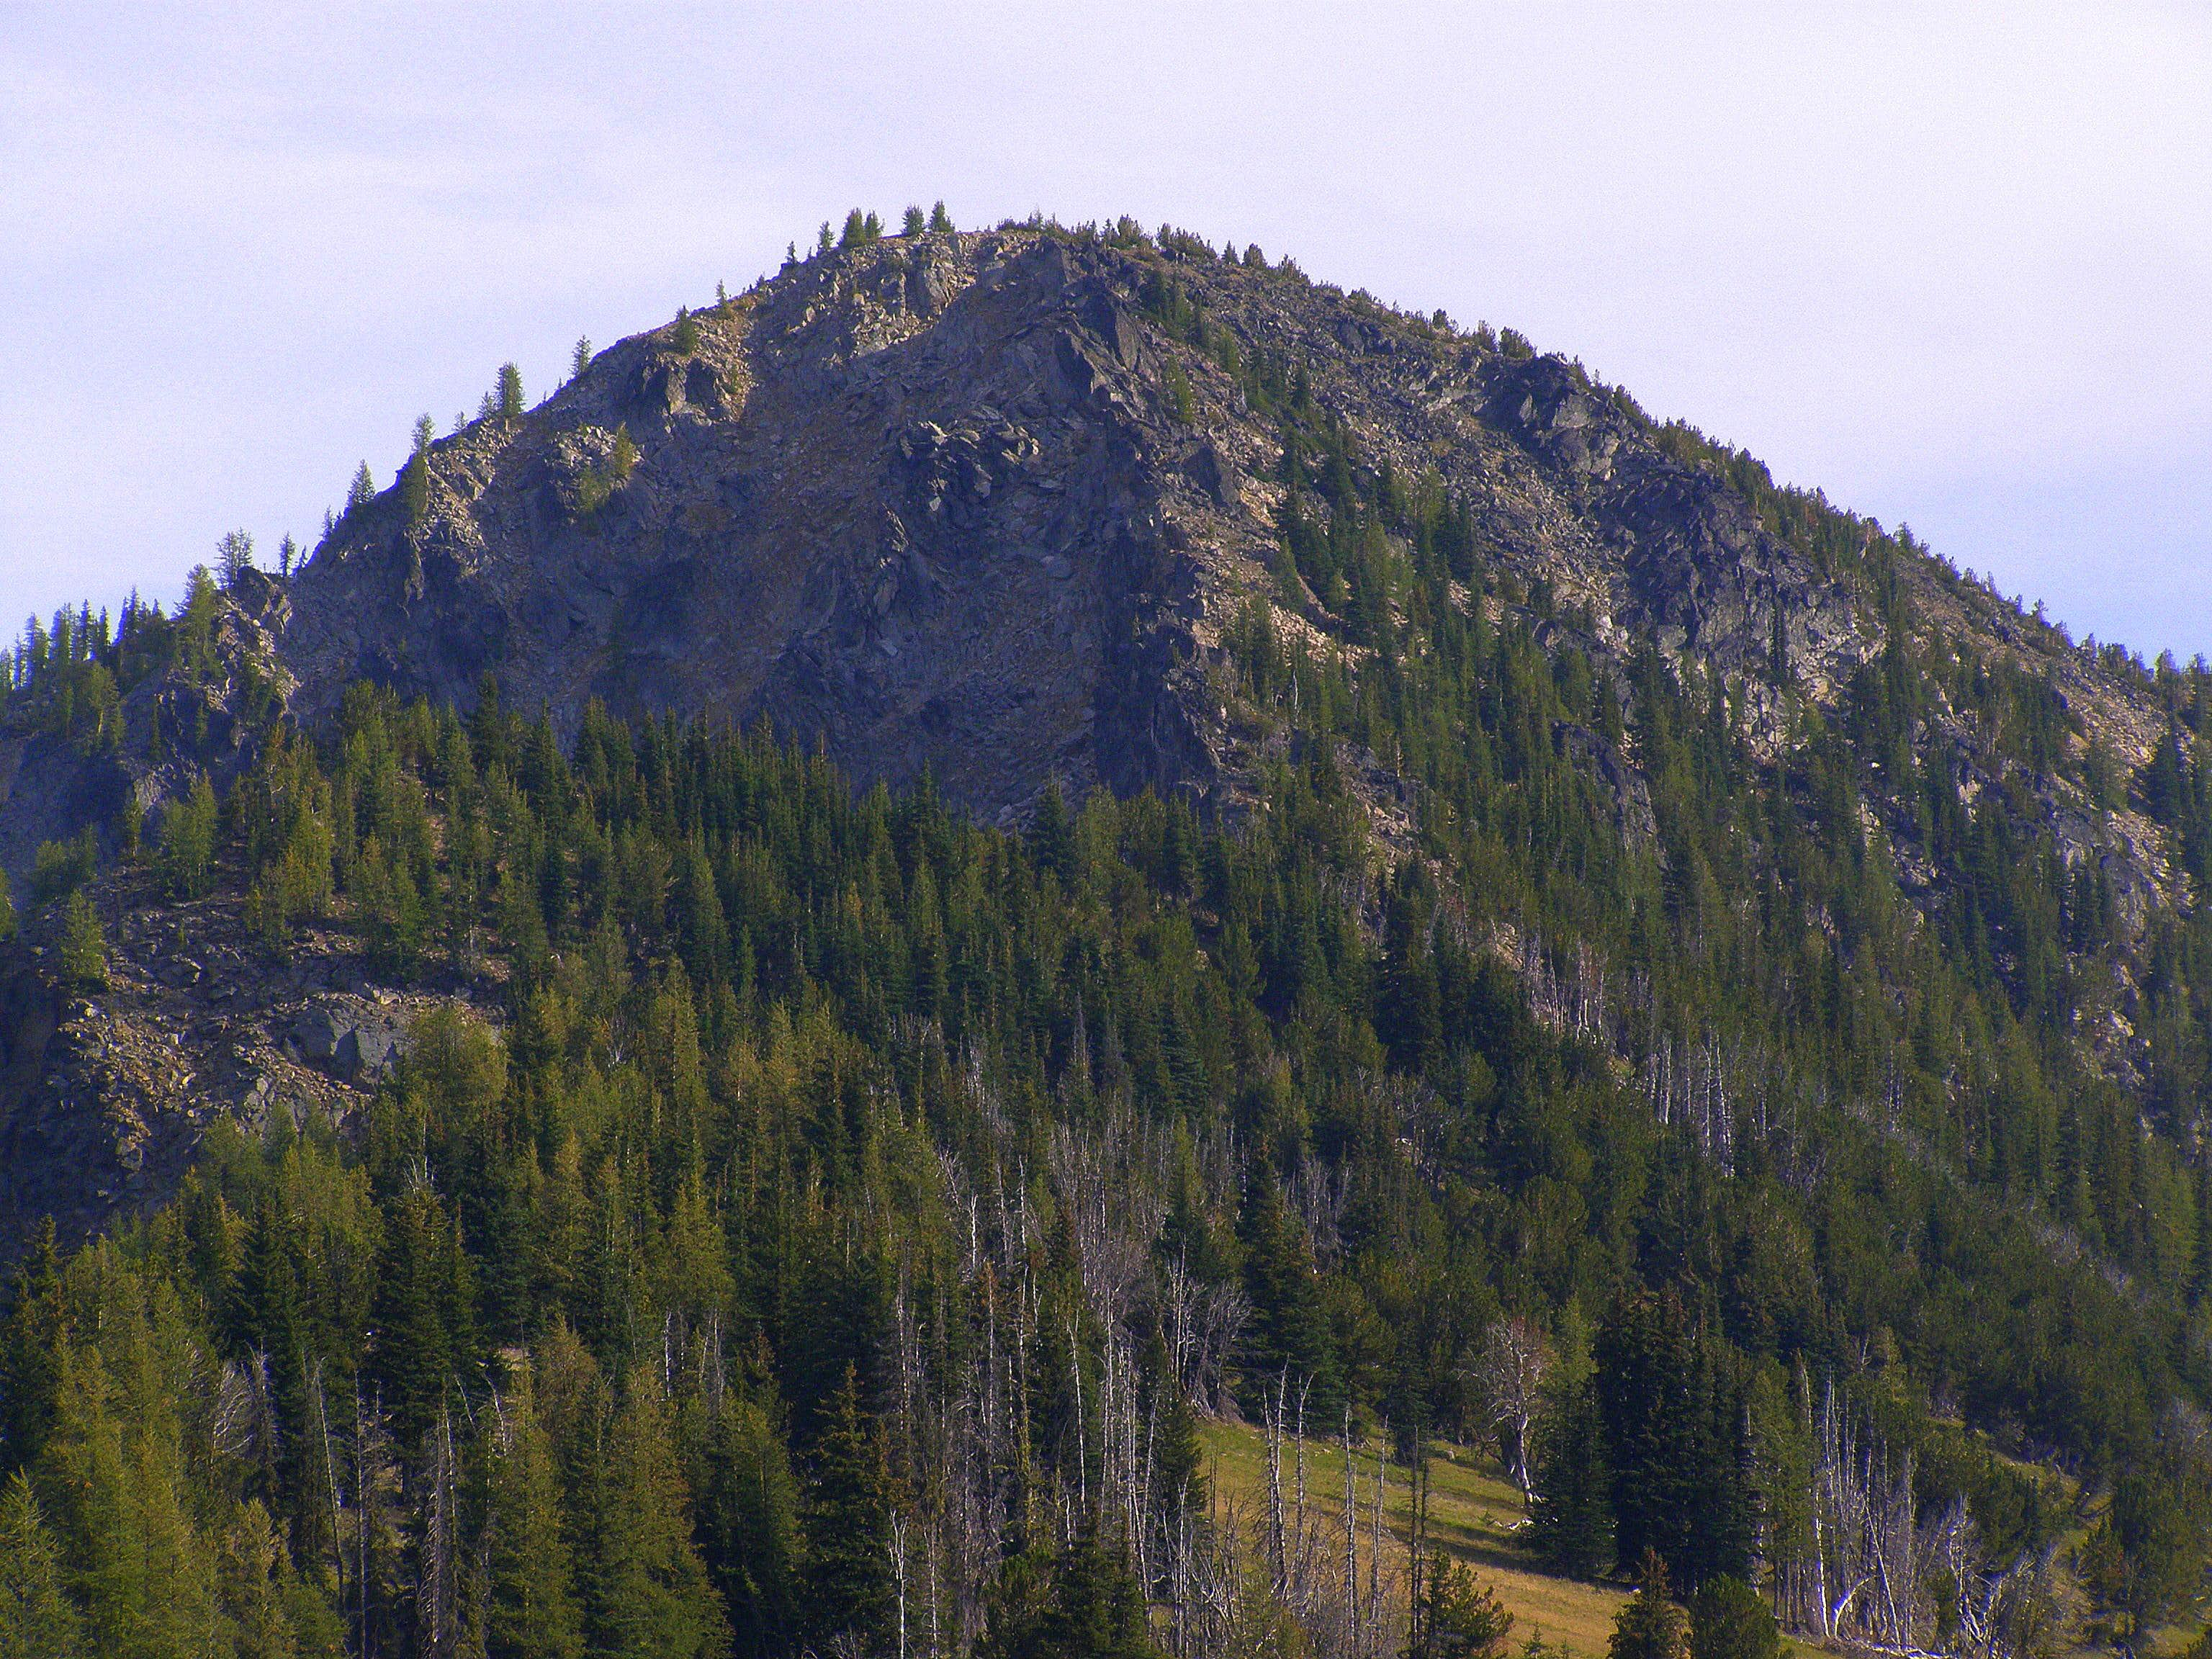 North Navarre Peak